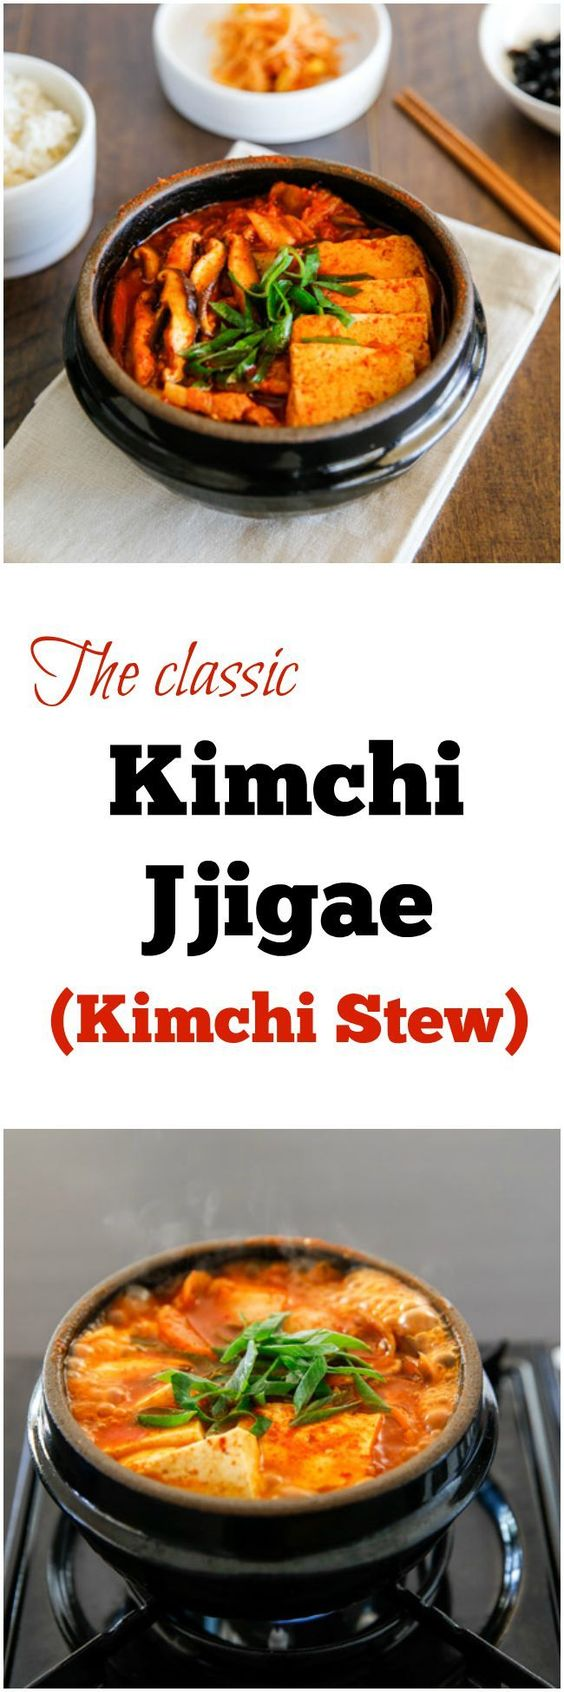 Classic, Soups and Kimchi on Pinterest